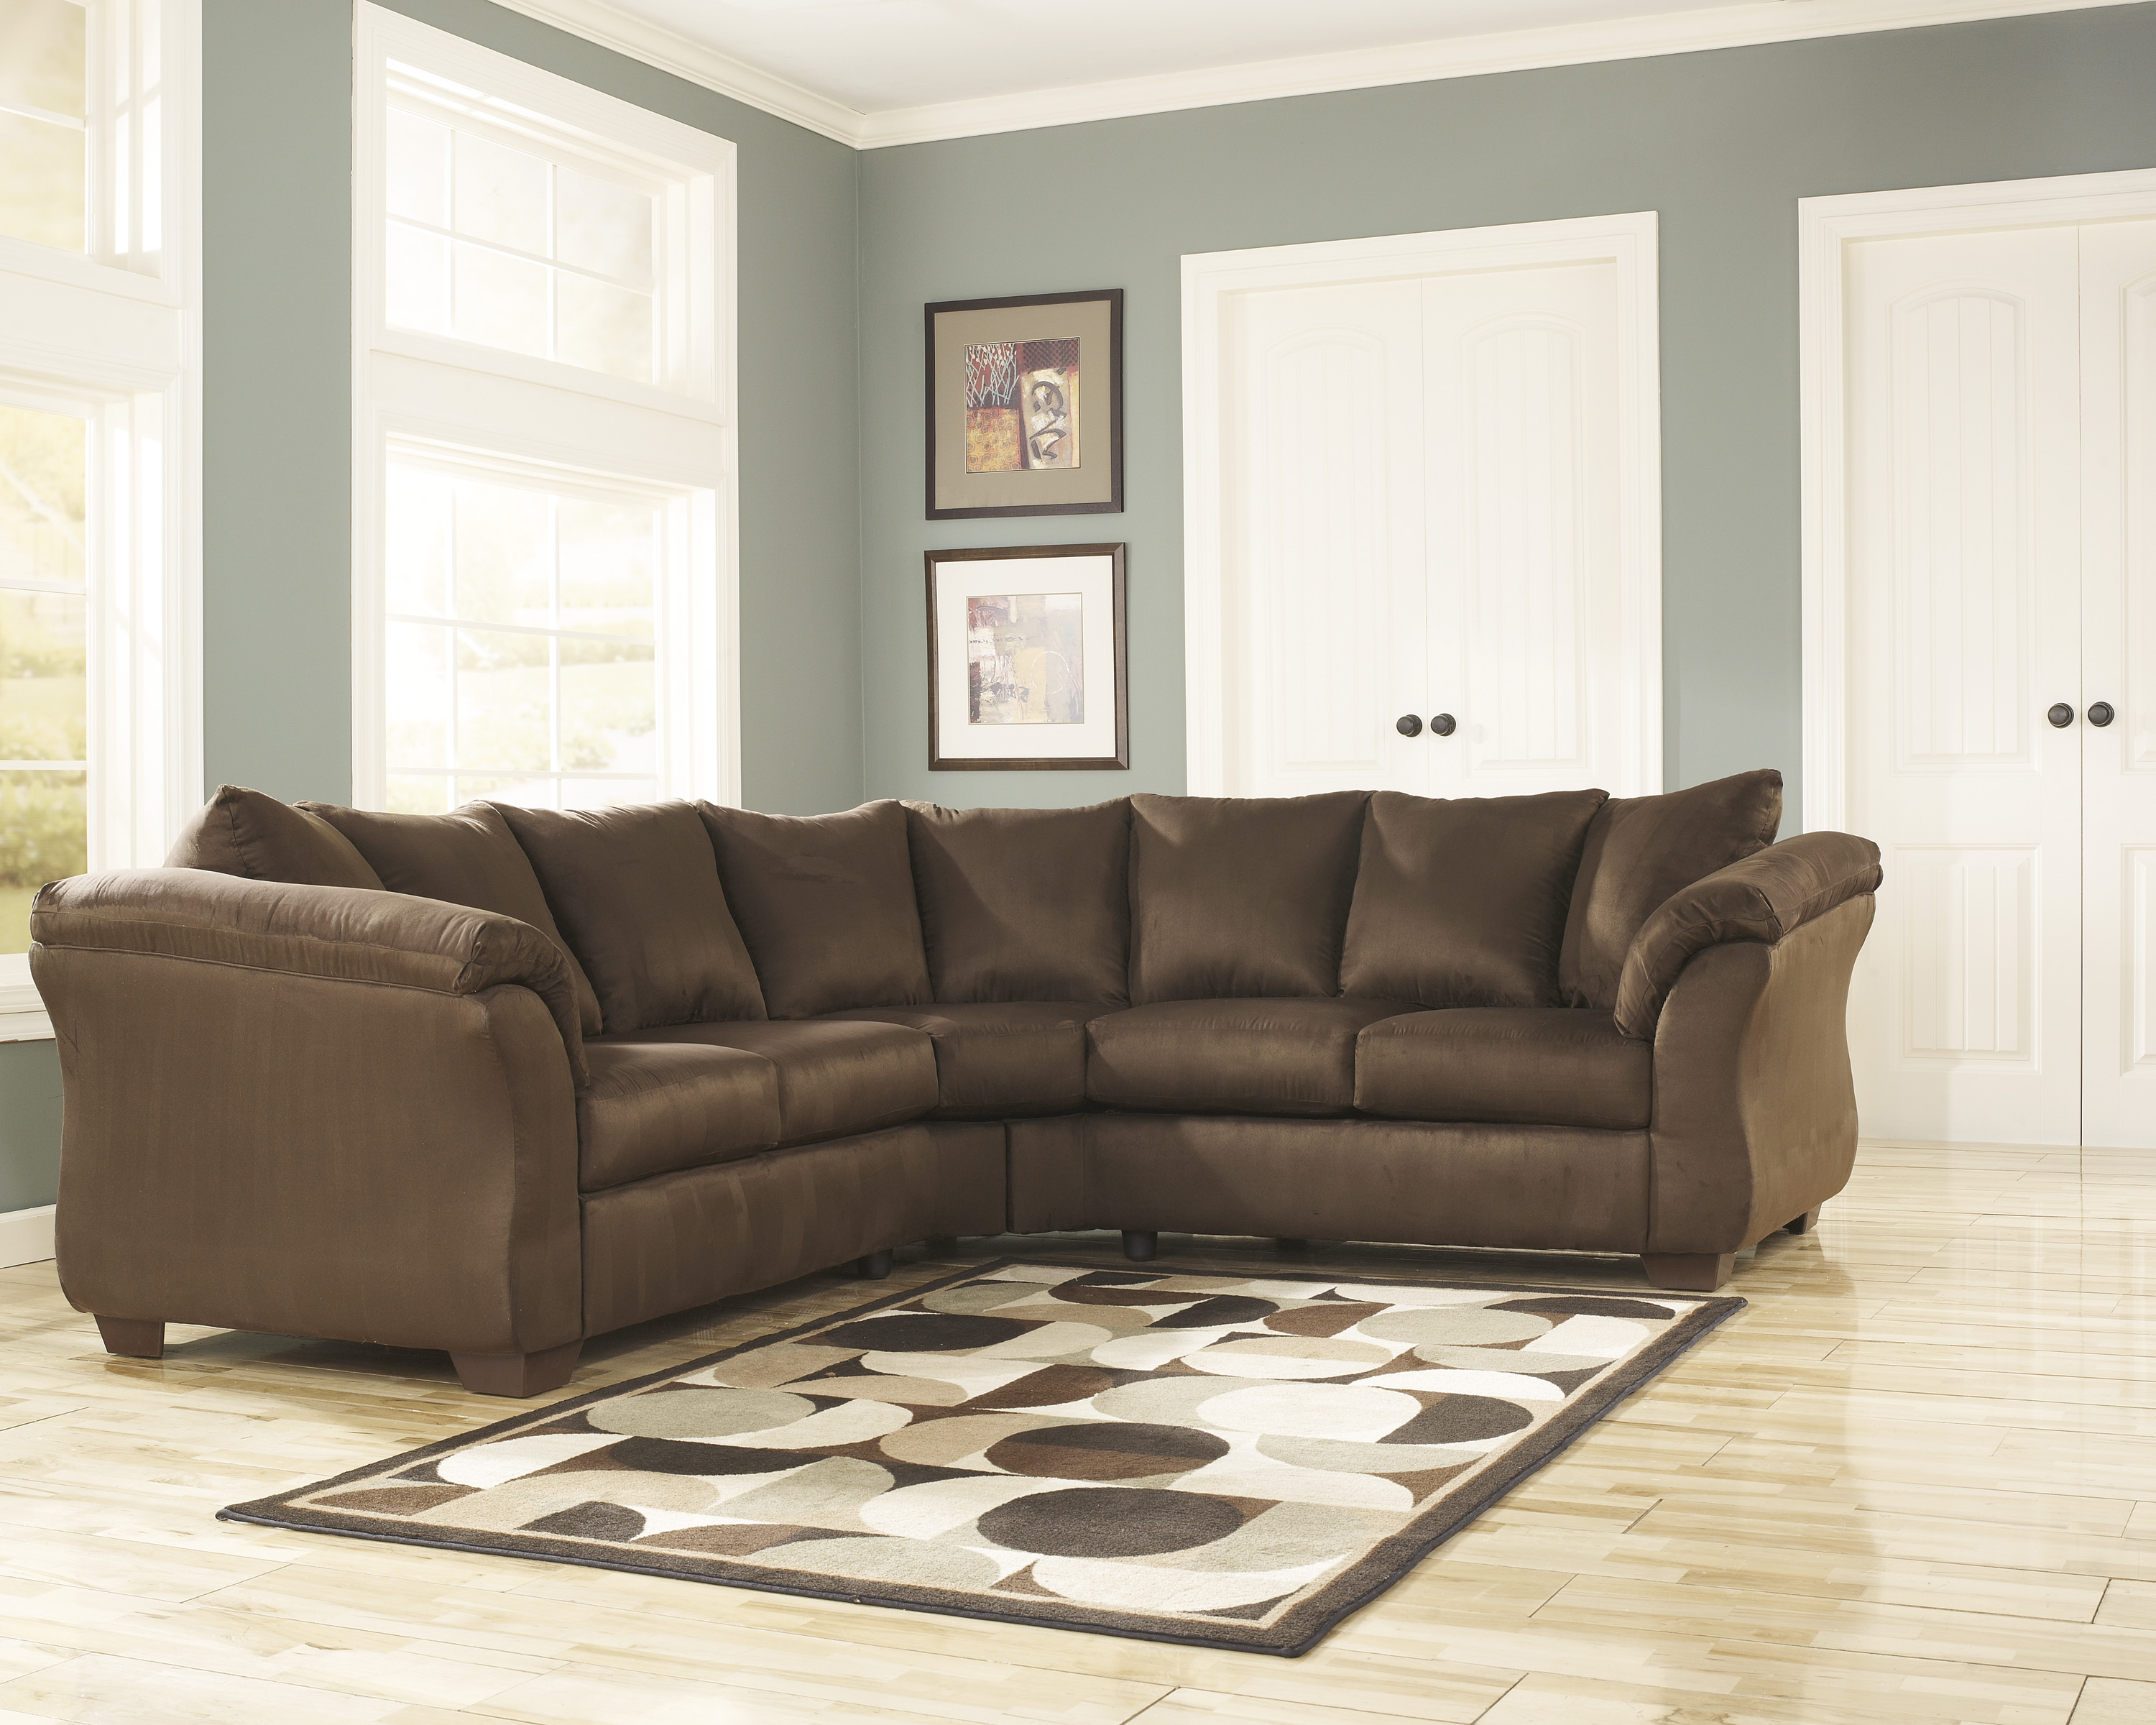 Darcy Cafe Two Piece Sectional  / $23.99 A Week